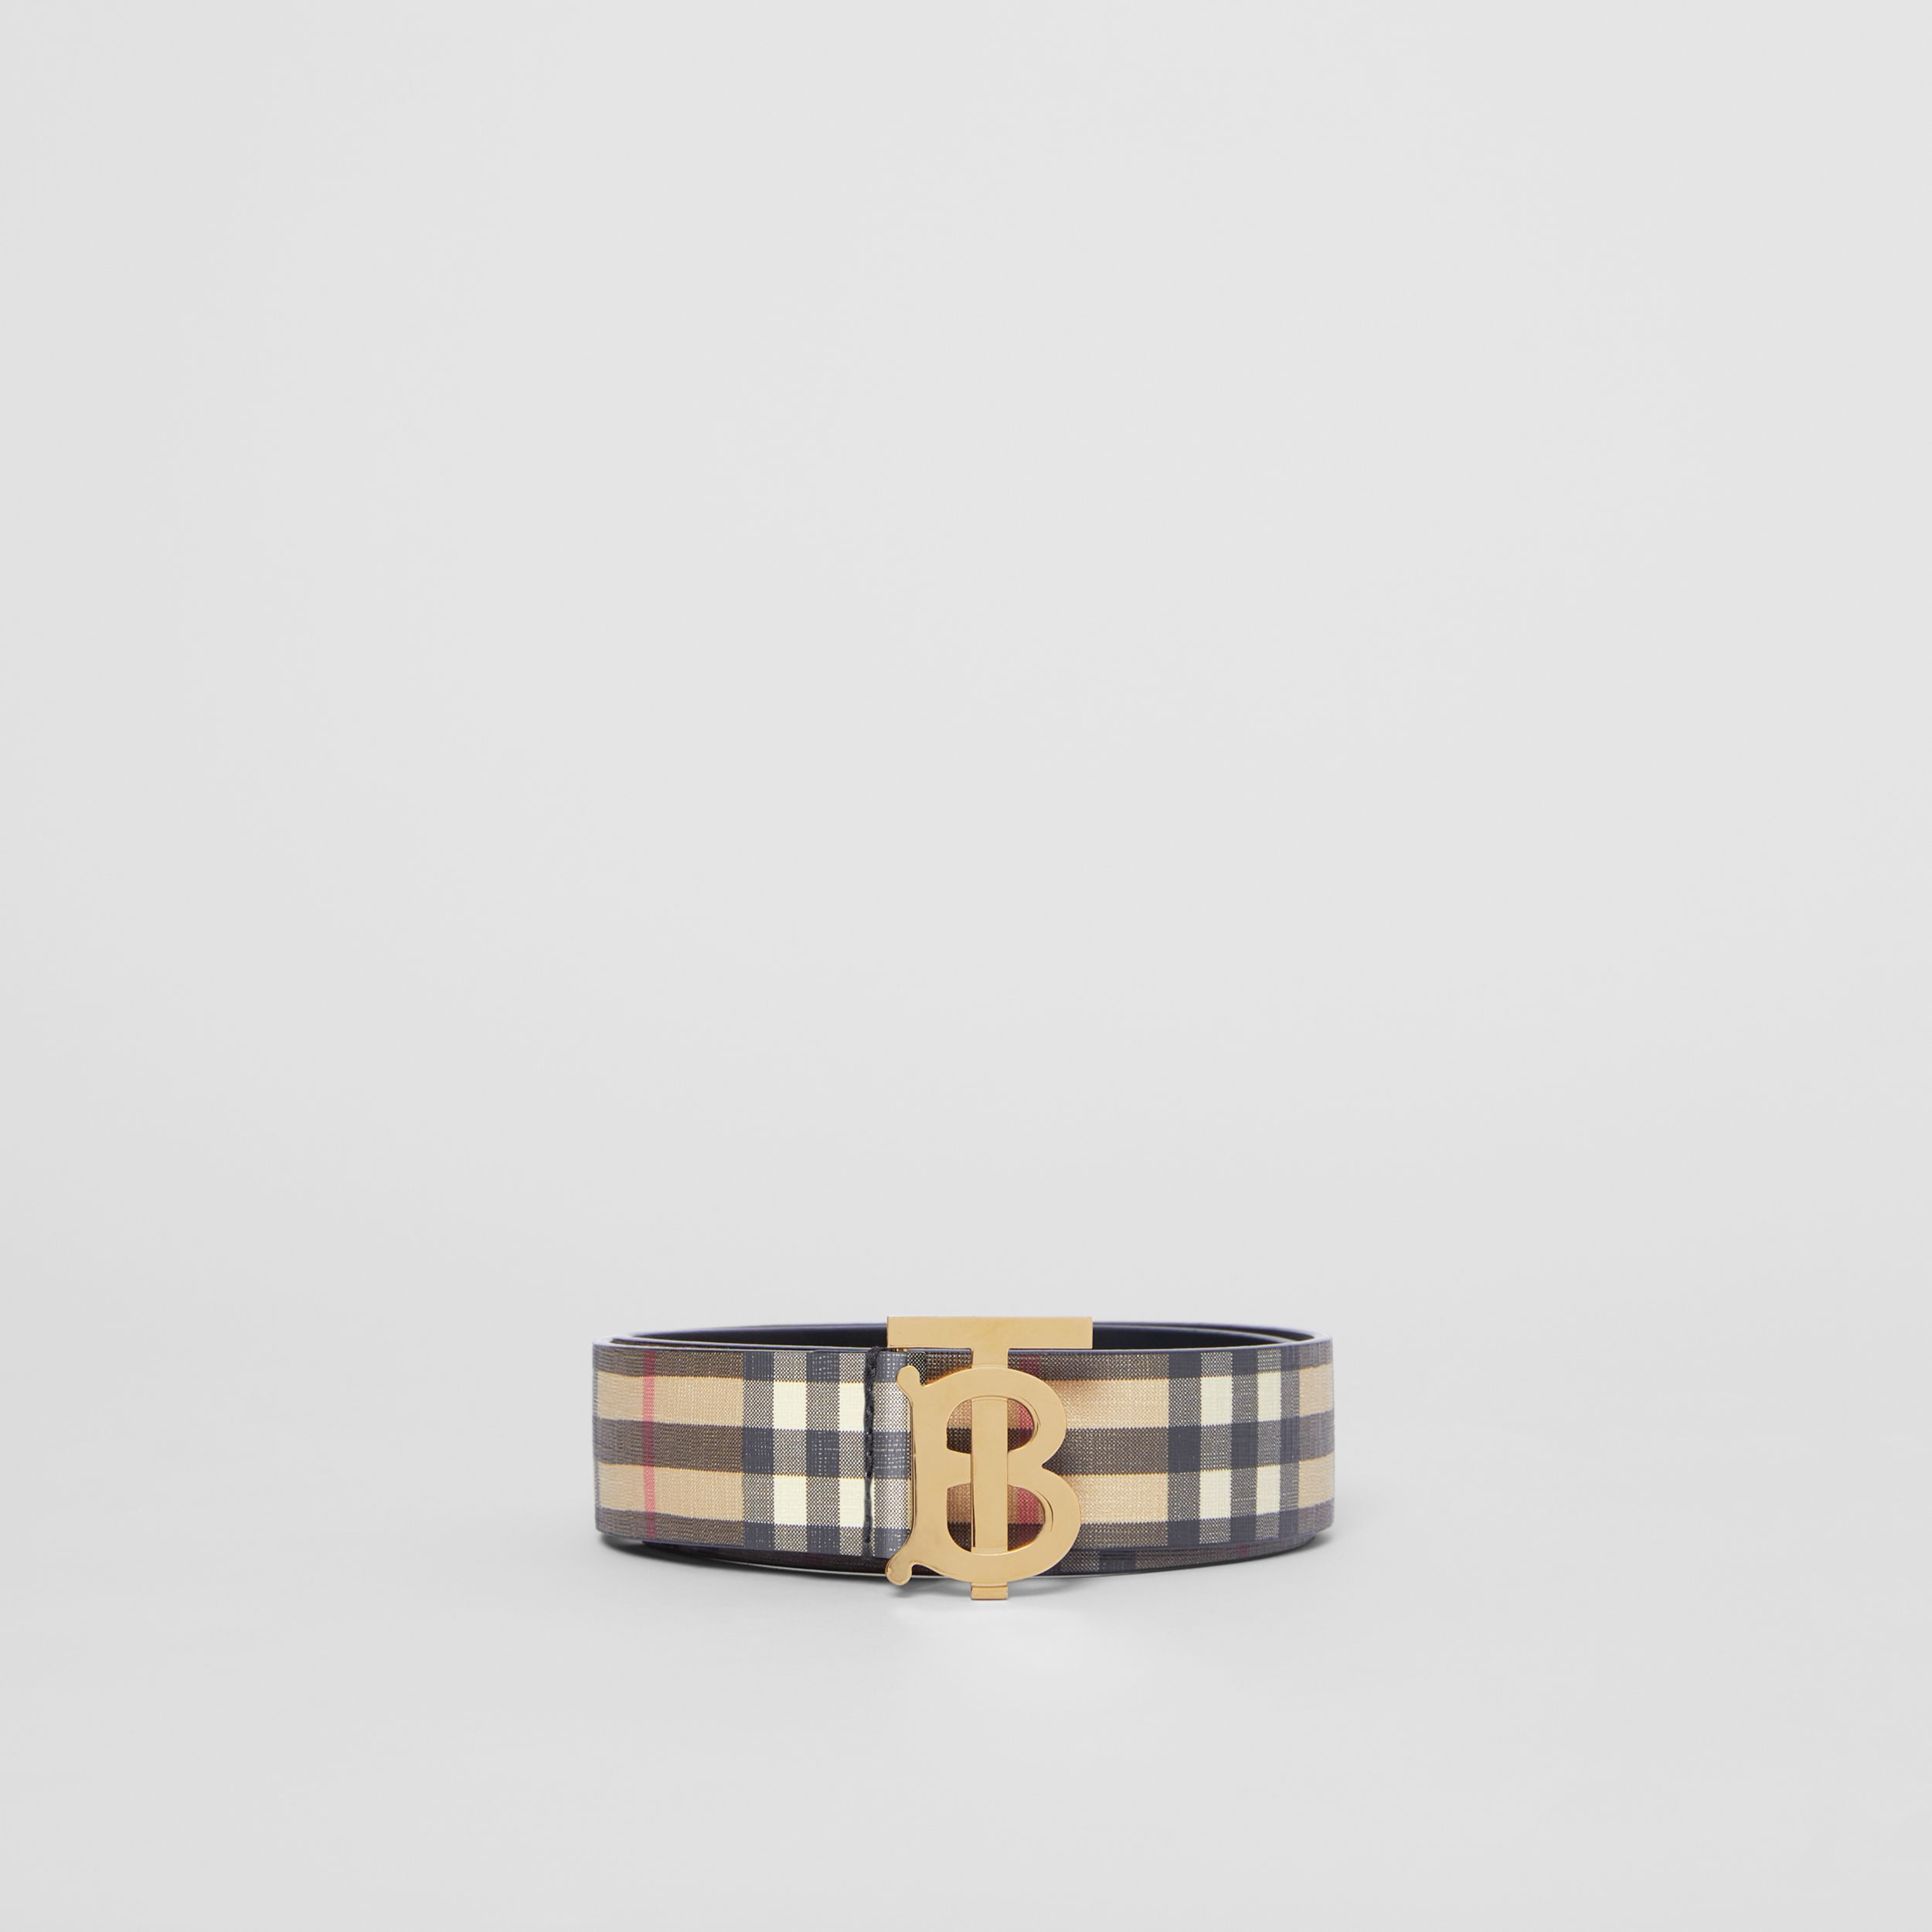 Monogram Motif Vintage Check E-canvas Belt in Archive Beige - Women | Burberry - 4